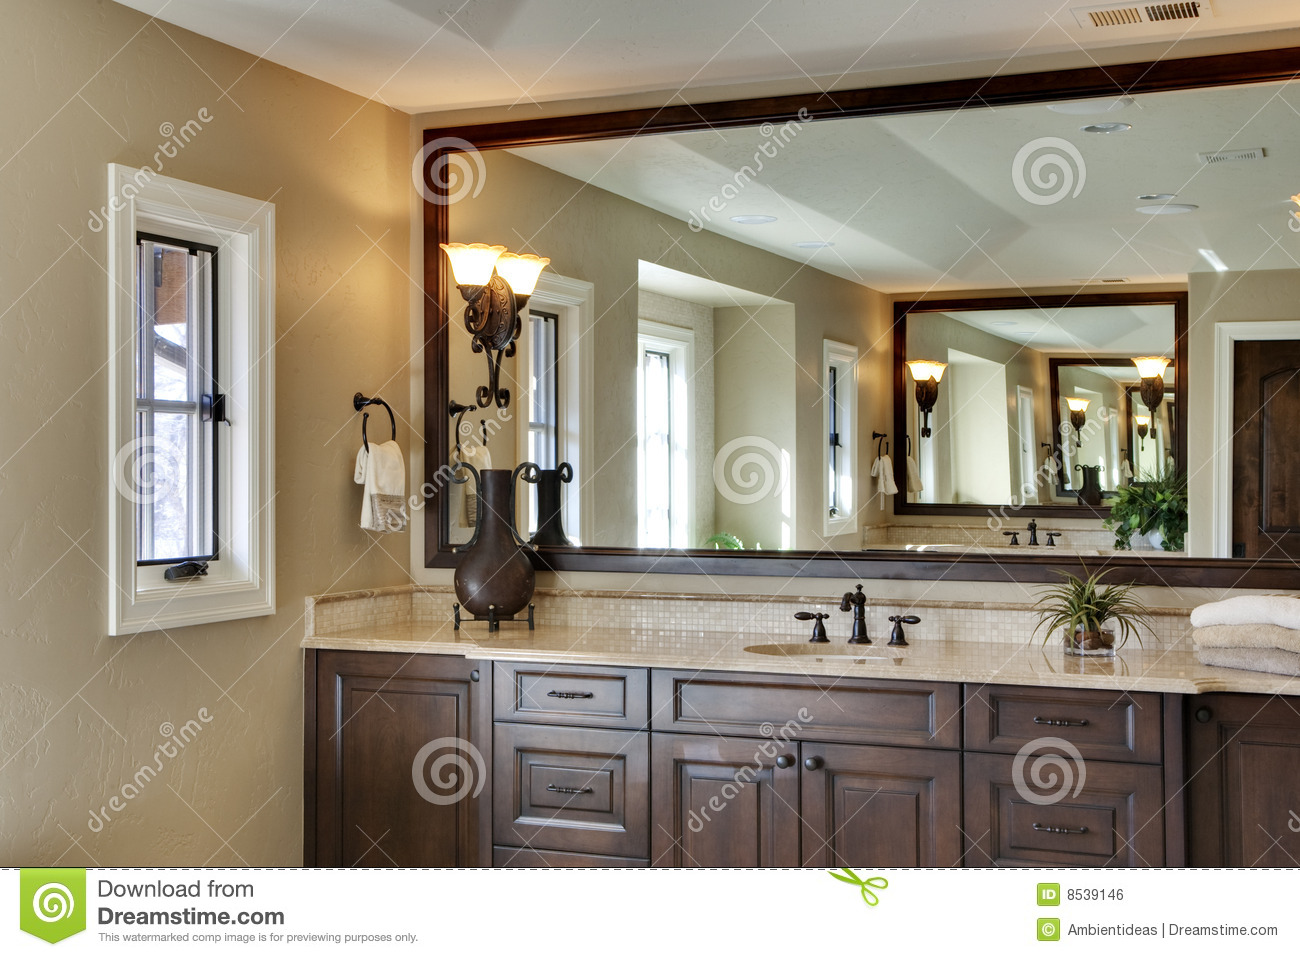 Bathroom With Mirror Royalty Free Stock Image